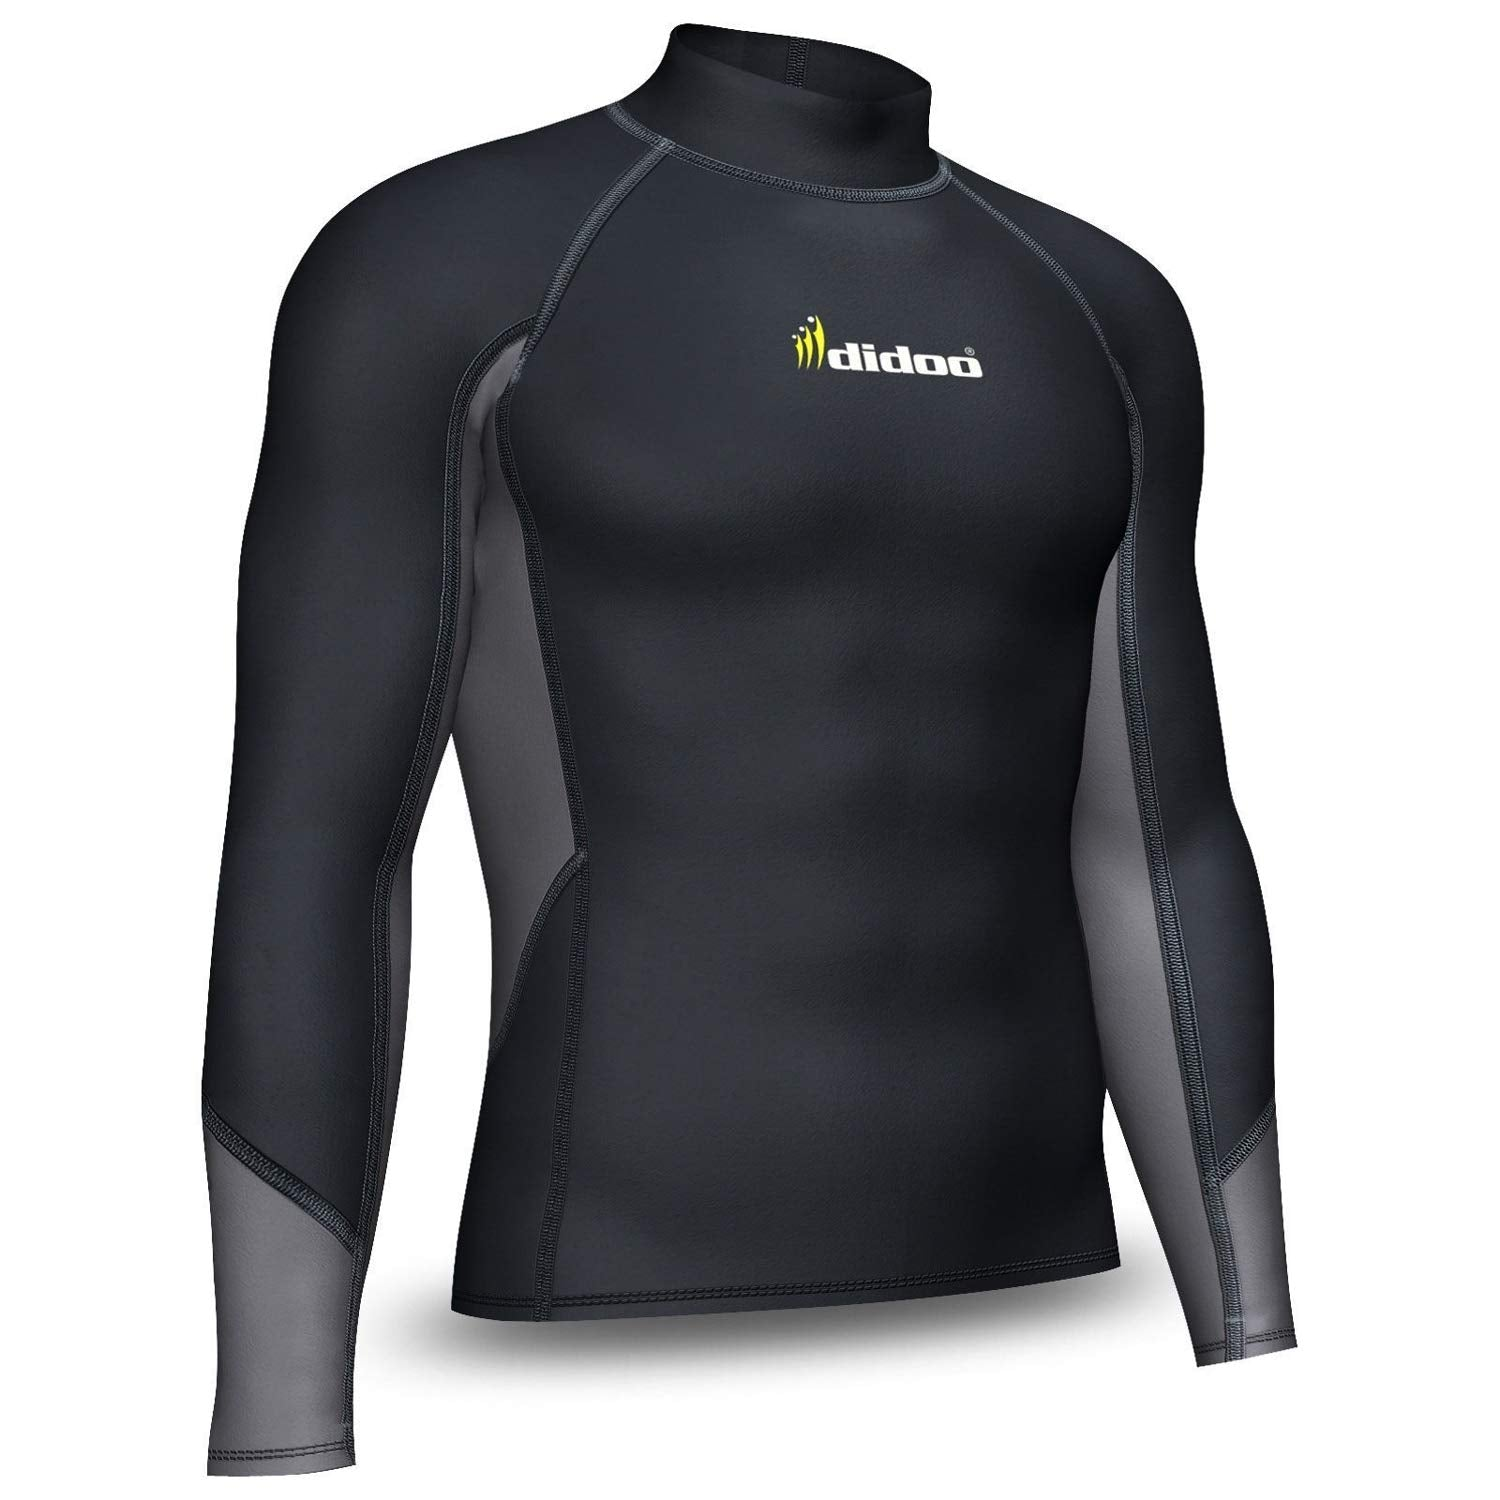 DiDOO Men's Compression Thermal Baselayer Top Long Sleeve Mock Neck